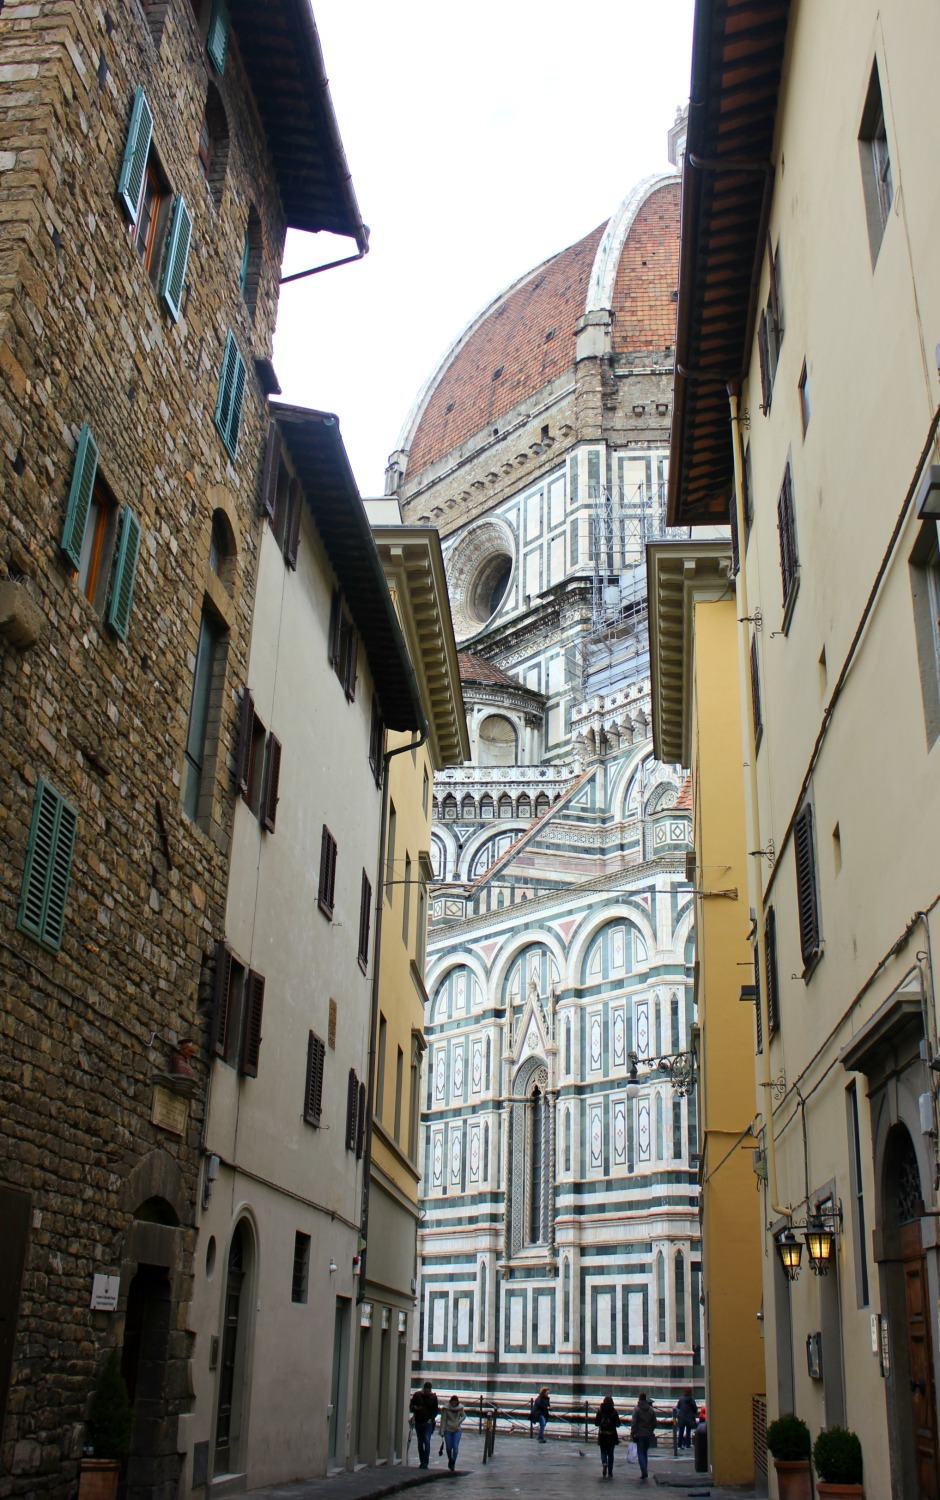 A view of the Duomo through an alleyway in Florence, Italy - my Uffizi tour with kids and gelato making day in Florence